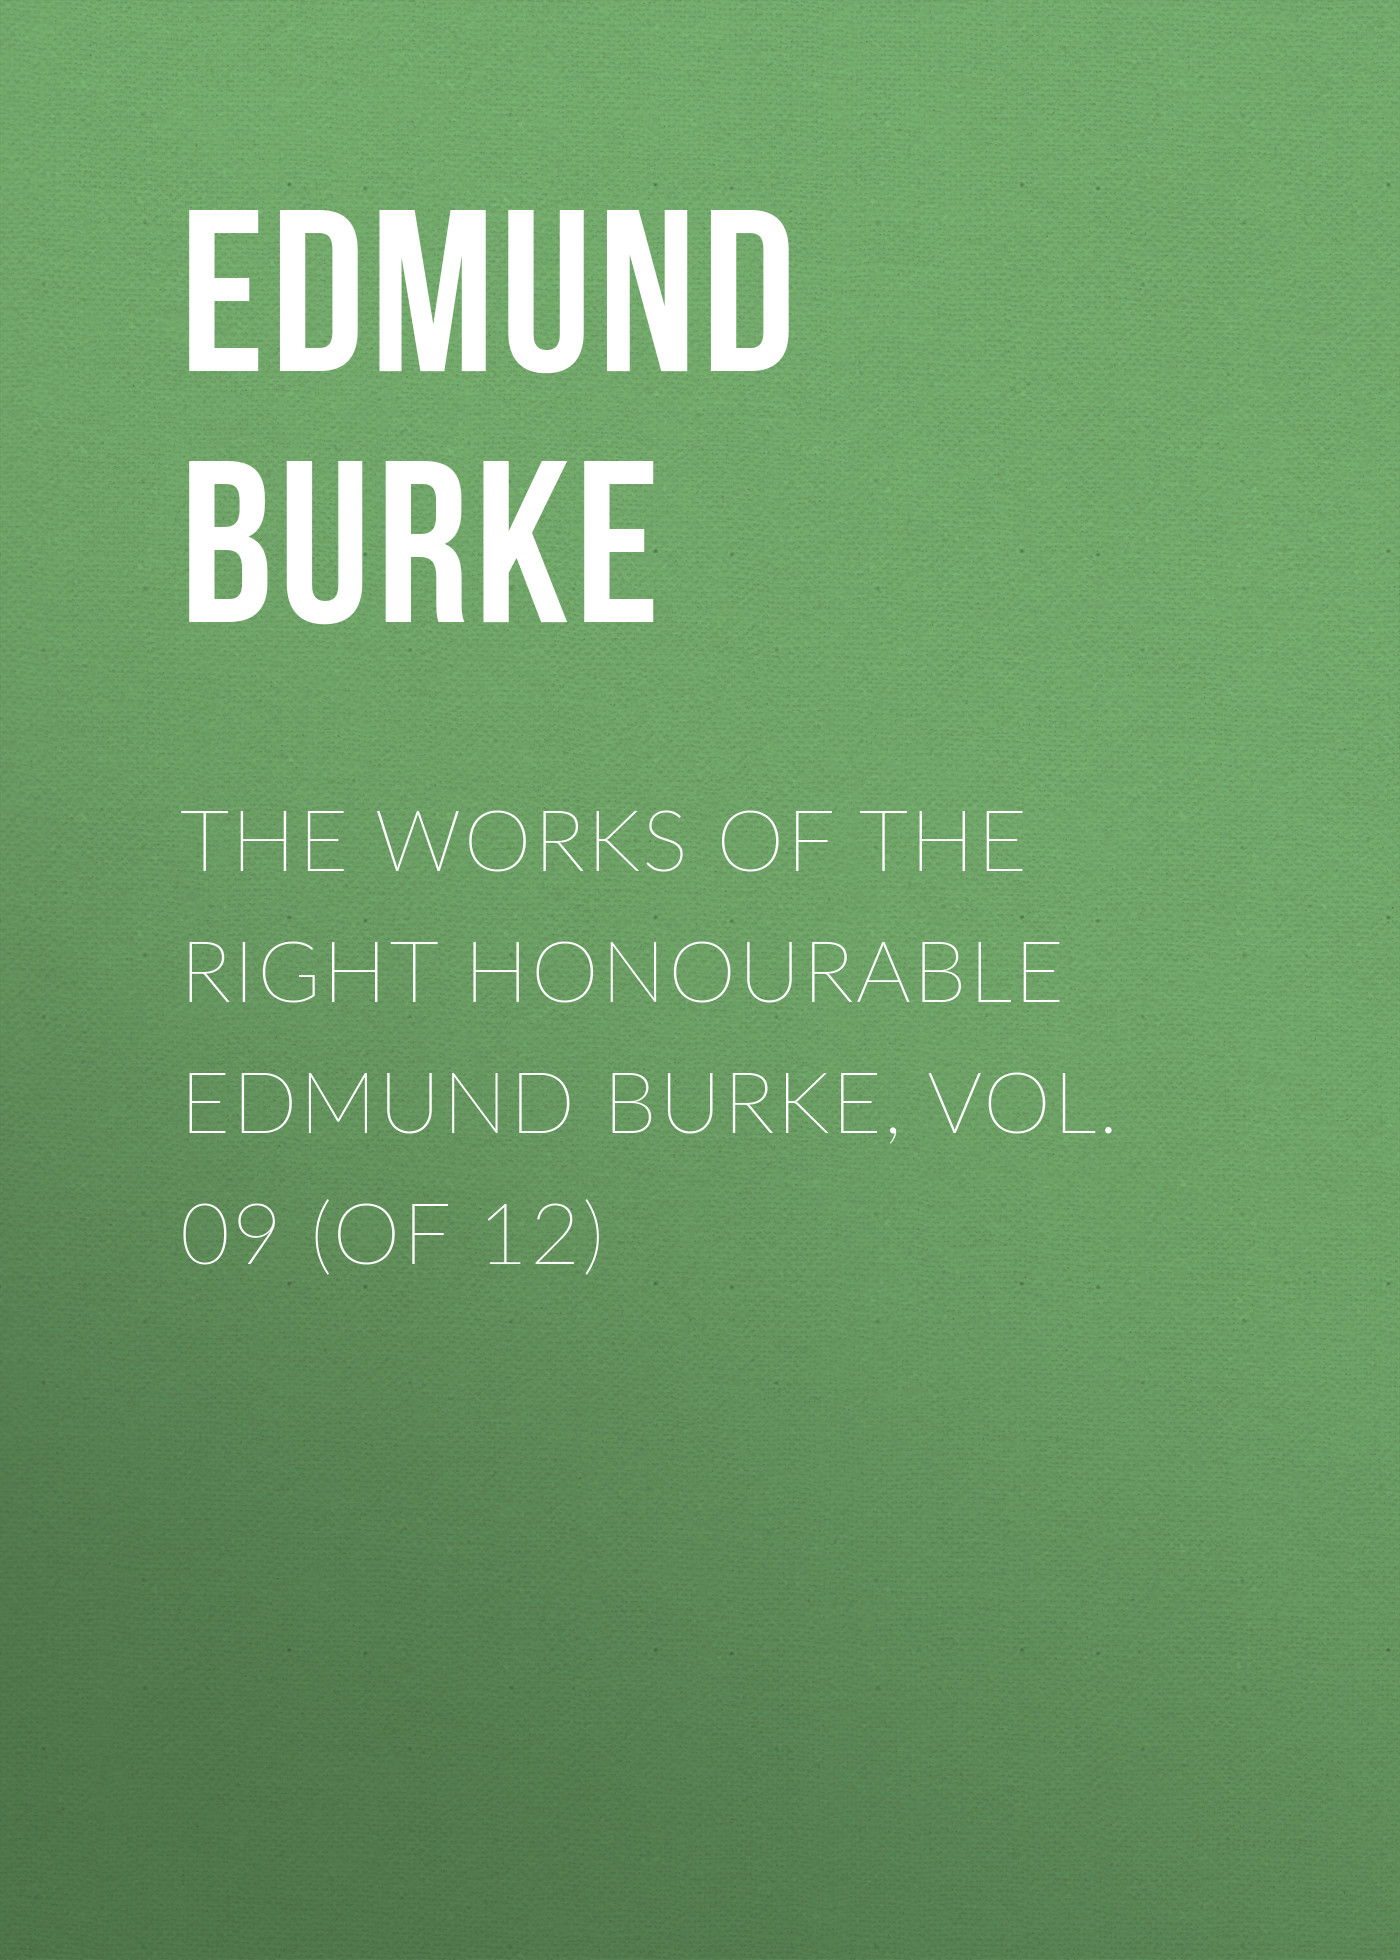 Edmund Burke The Works of the Right Honourable Edmund Burke, Vol. 09 (of 12) edmund burke the works of the right honourable edmund burke vol 12 of 12